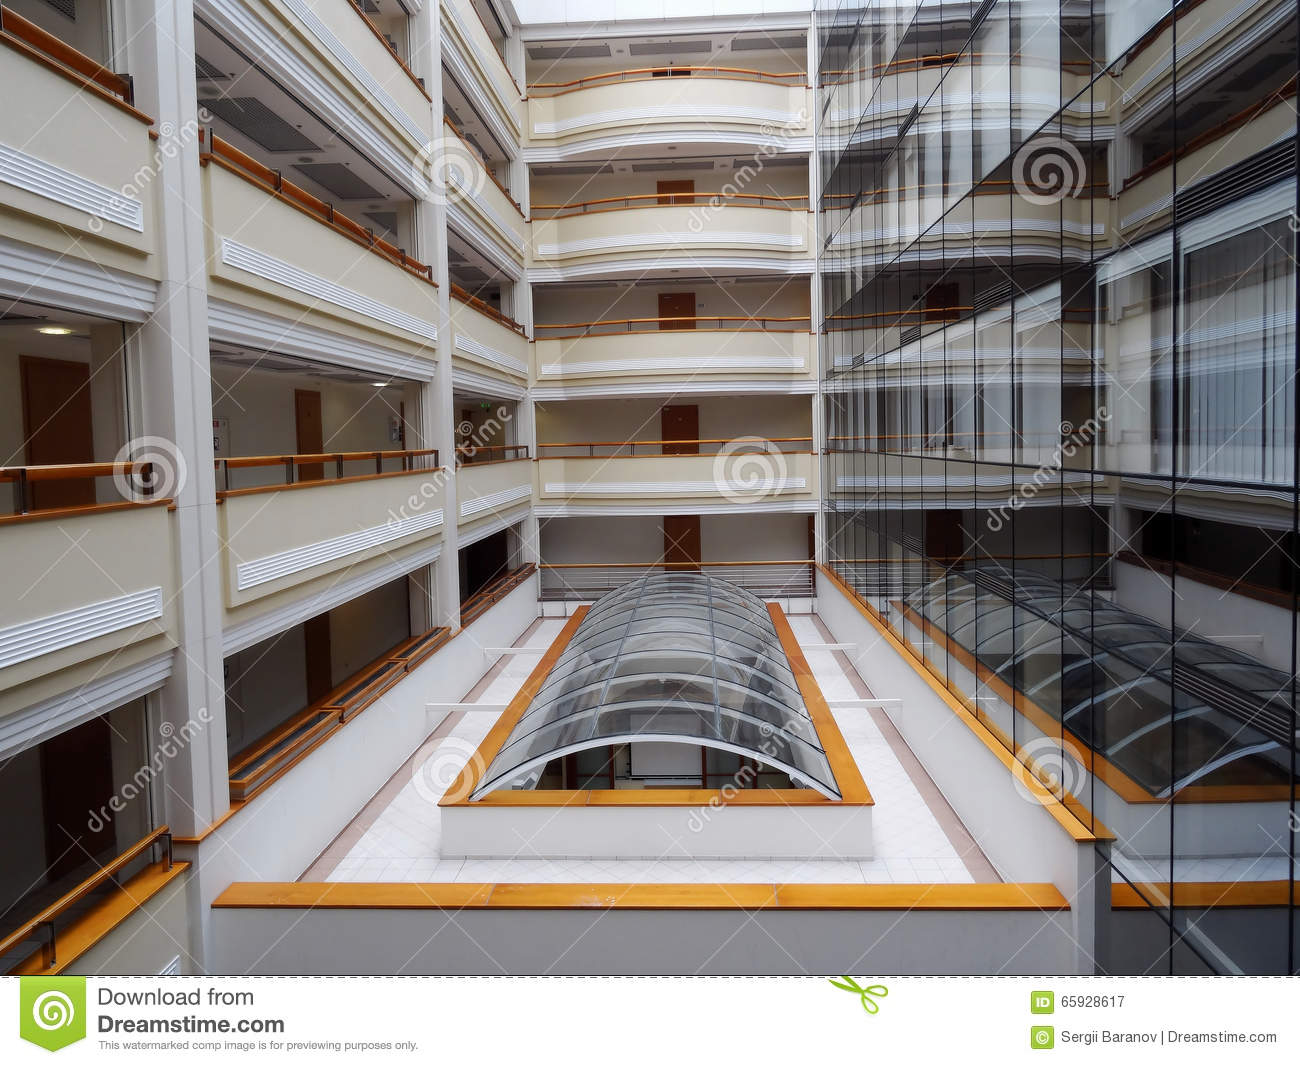 balcony in multi-storey hotel interior stock photo - image: 65928617